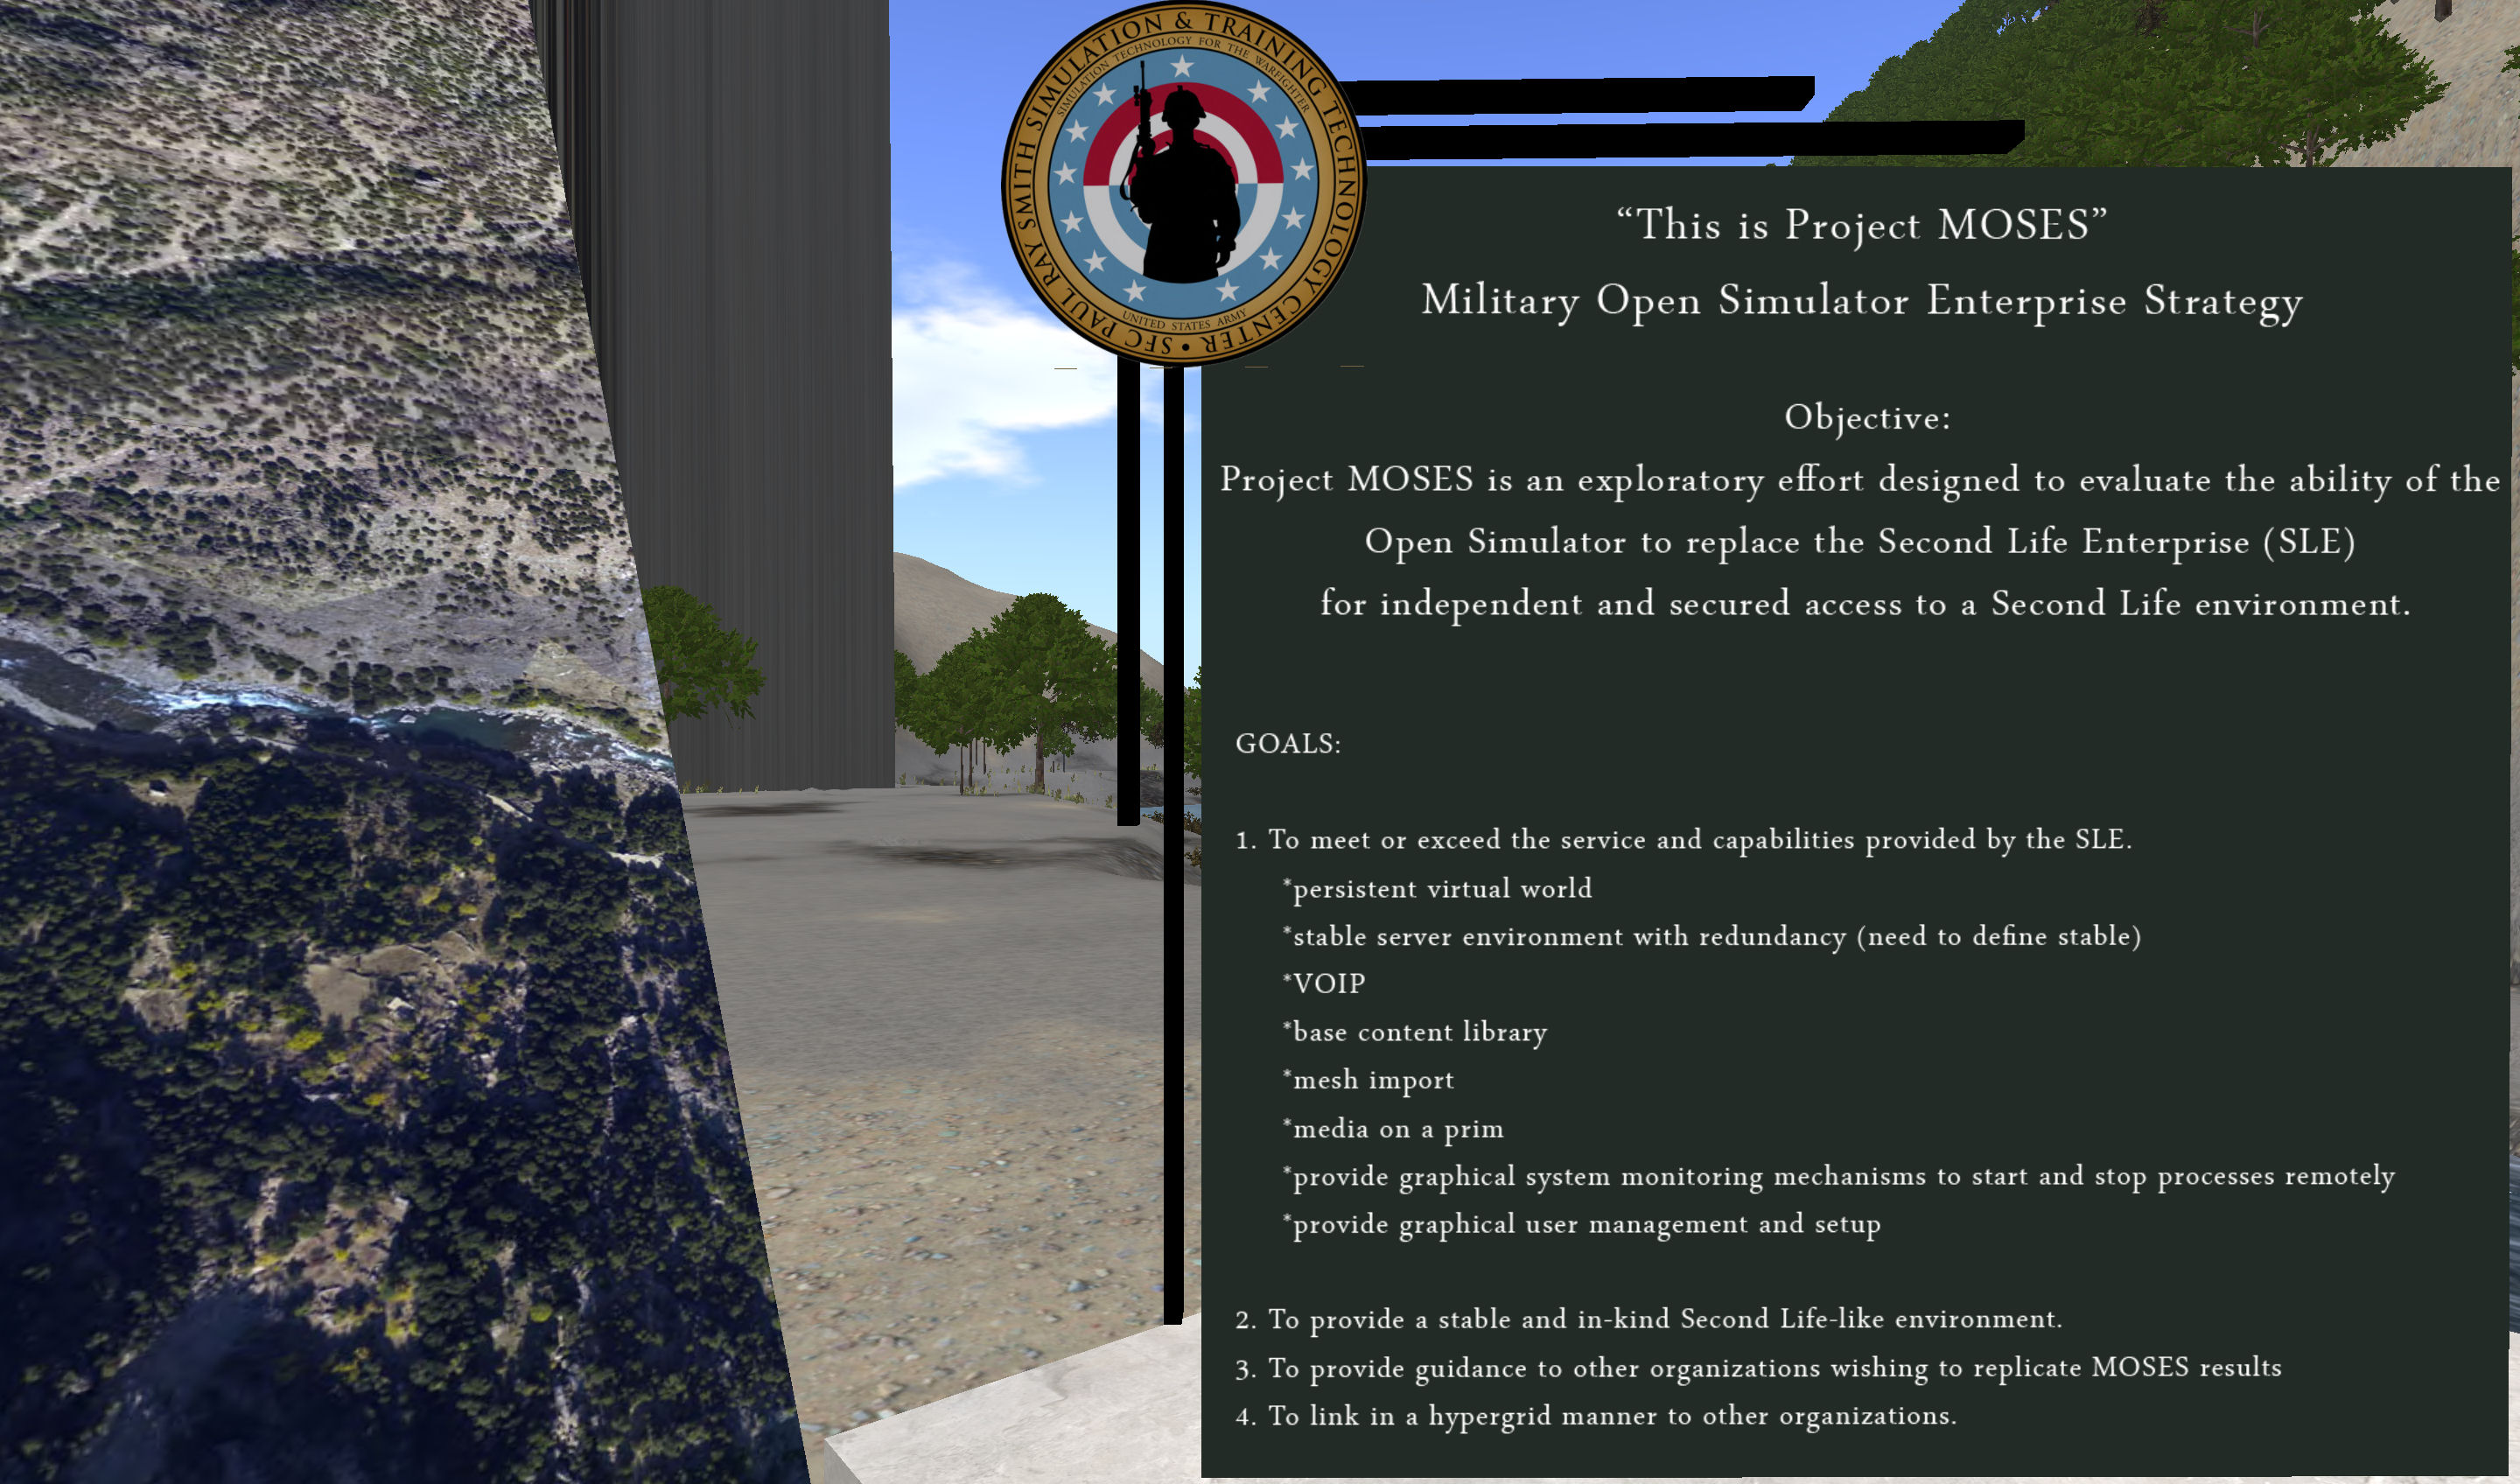 moses the us army u0027s opensim exercise u2013 inara pey living in a